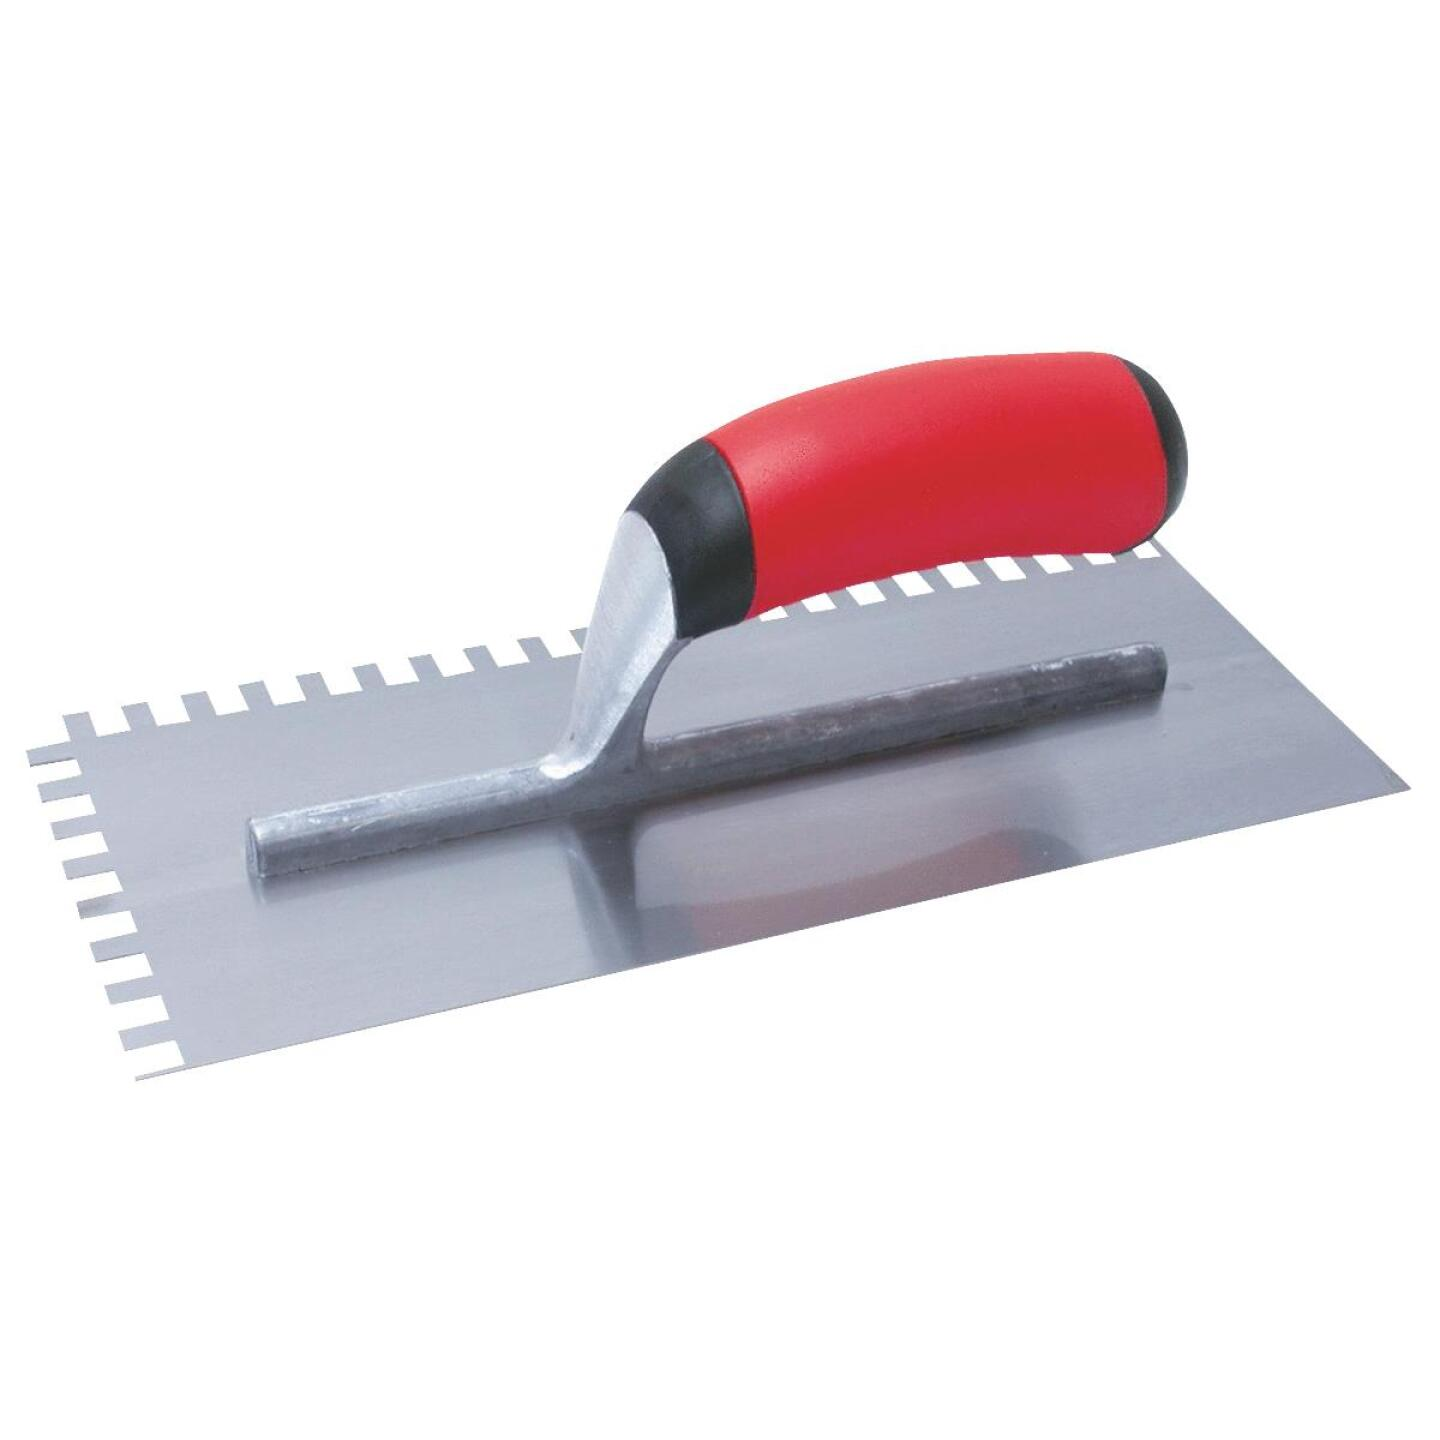 QLT 1/4 x 1/4 x 1/4 In. Square Notched Trowel w/Soft Grip Image 1